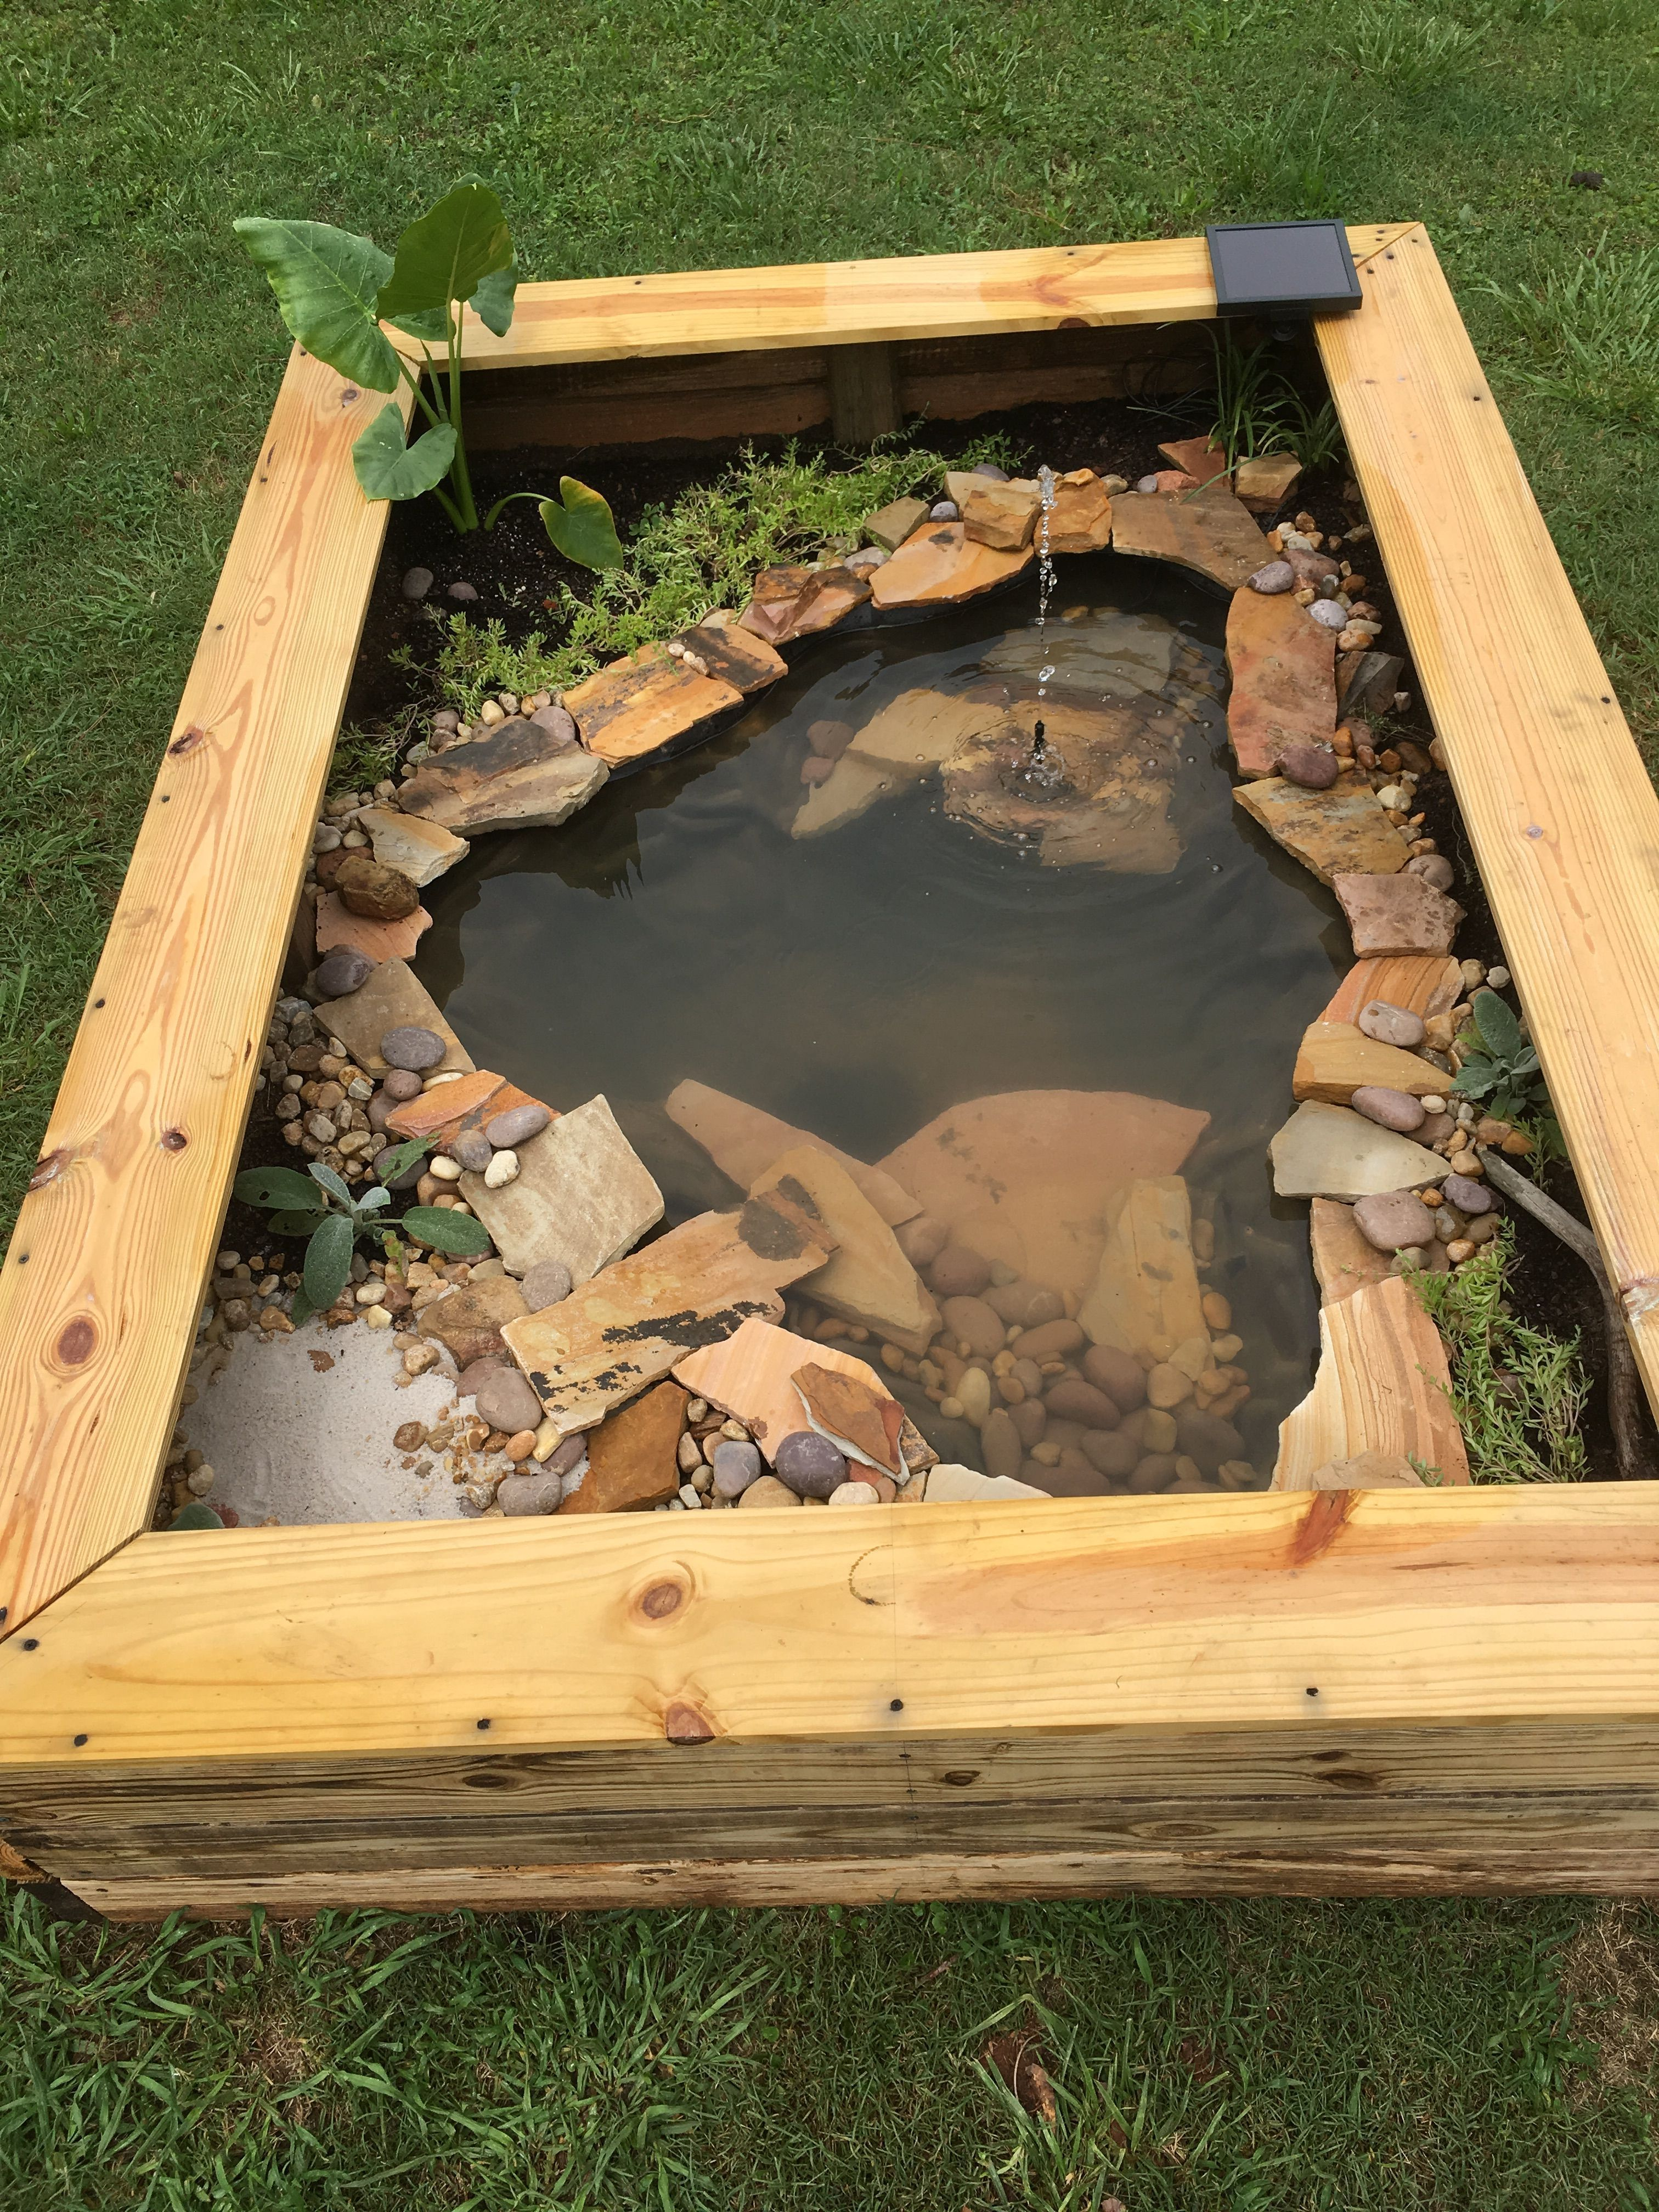 Our New Diy Above Ground Pond For Bella The Turtle Ponds